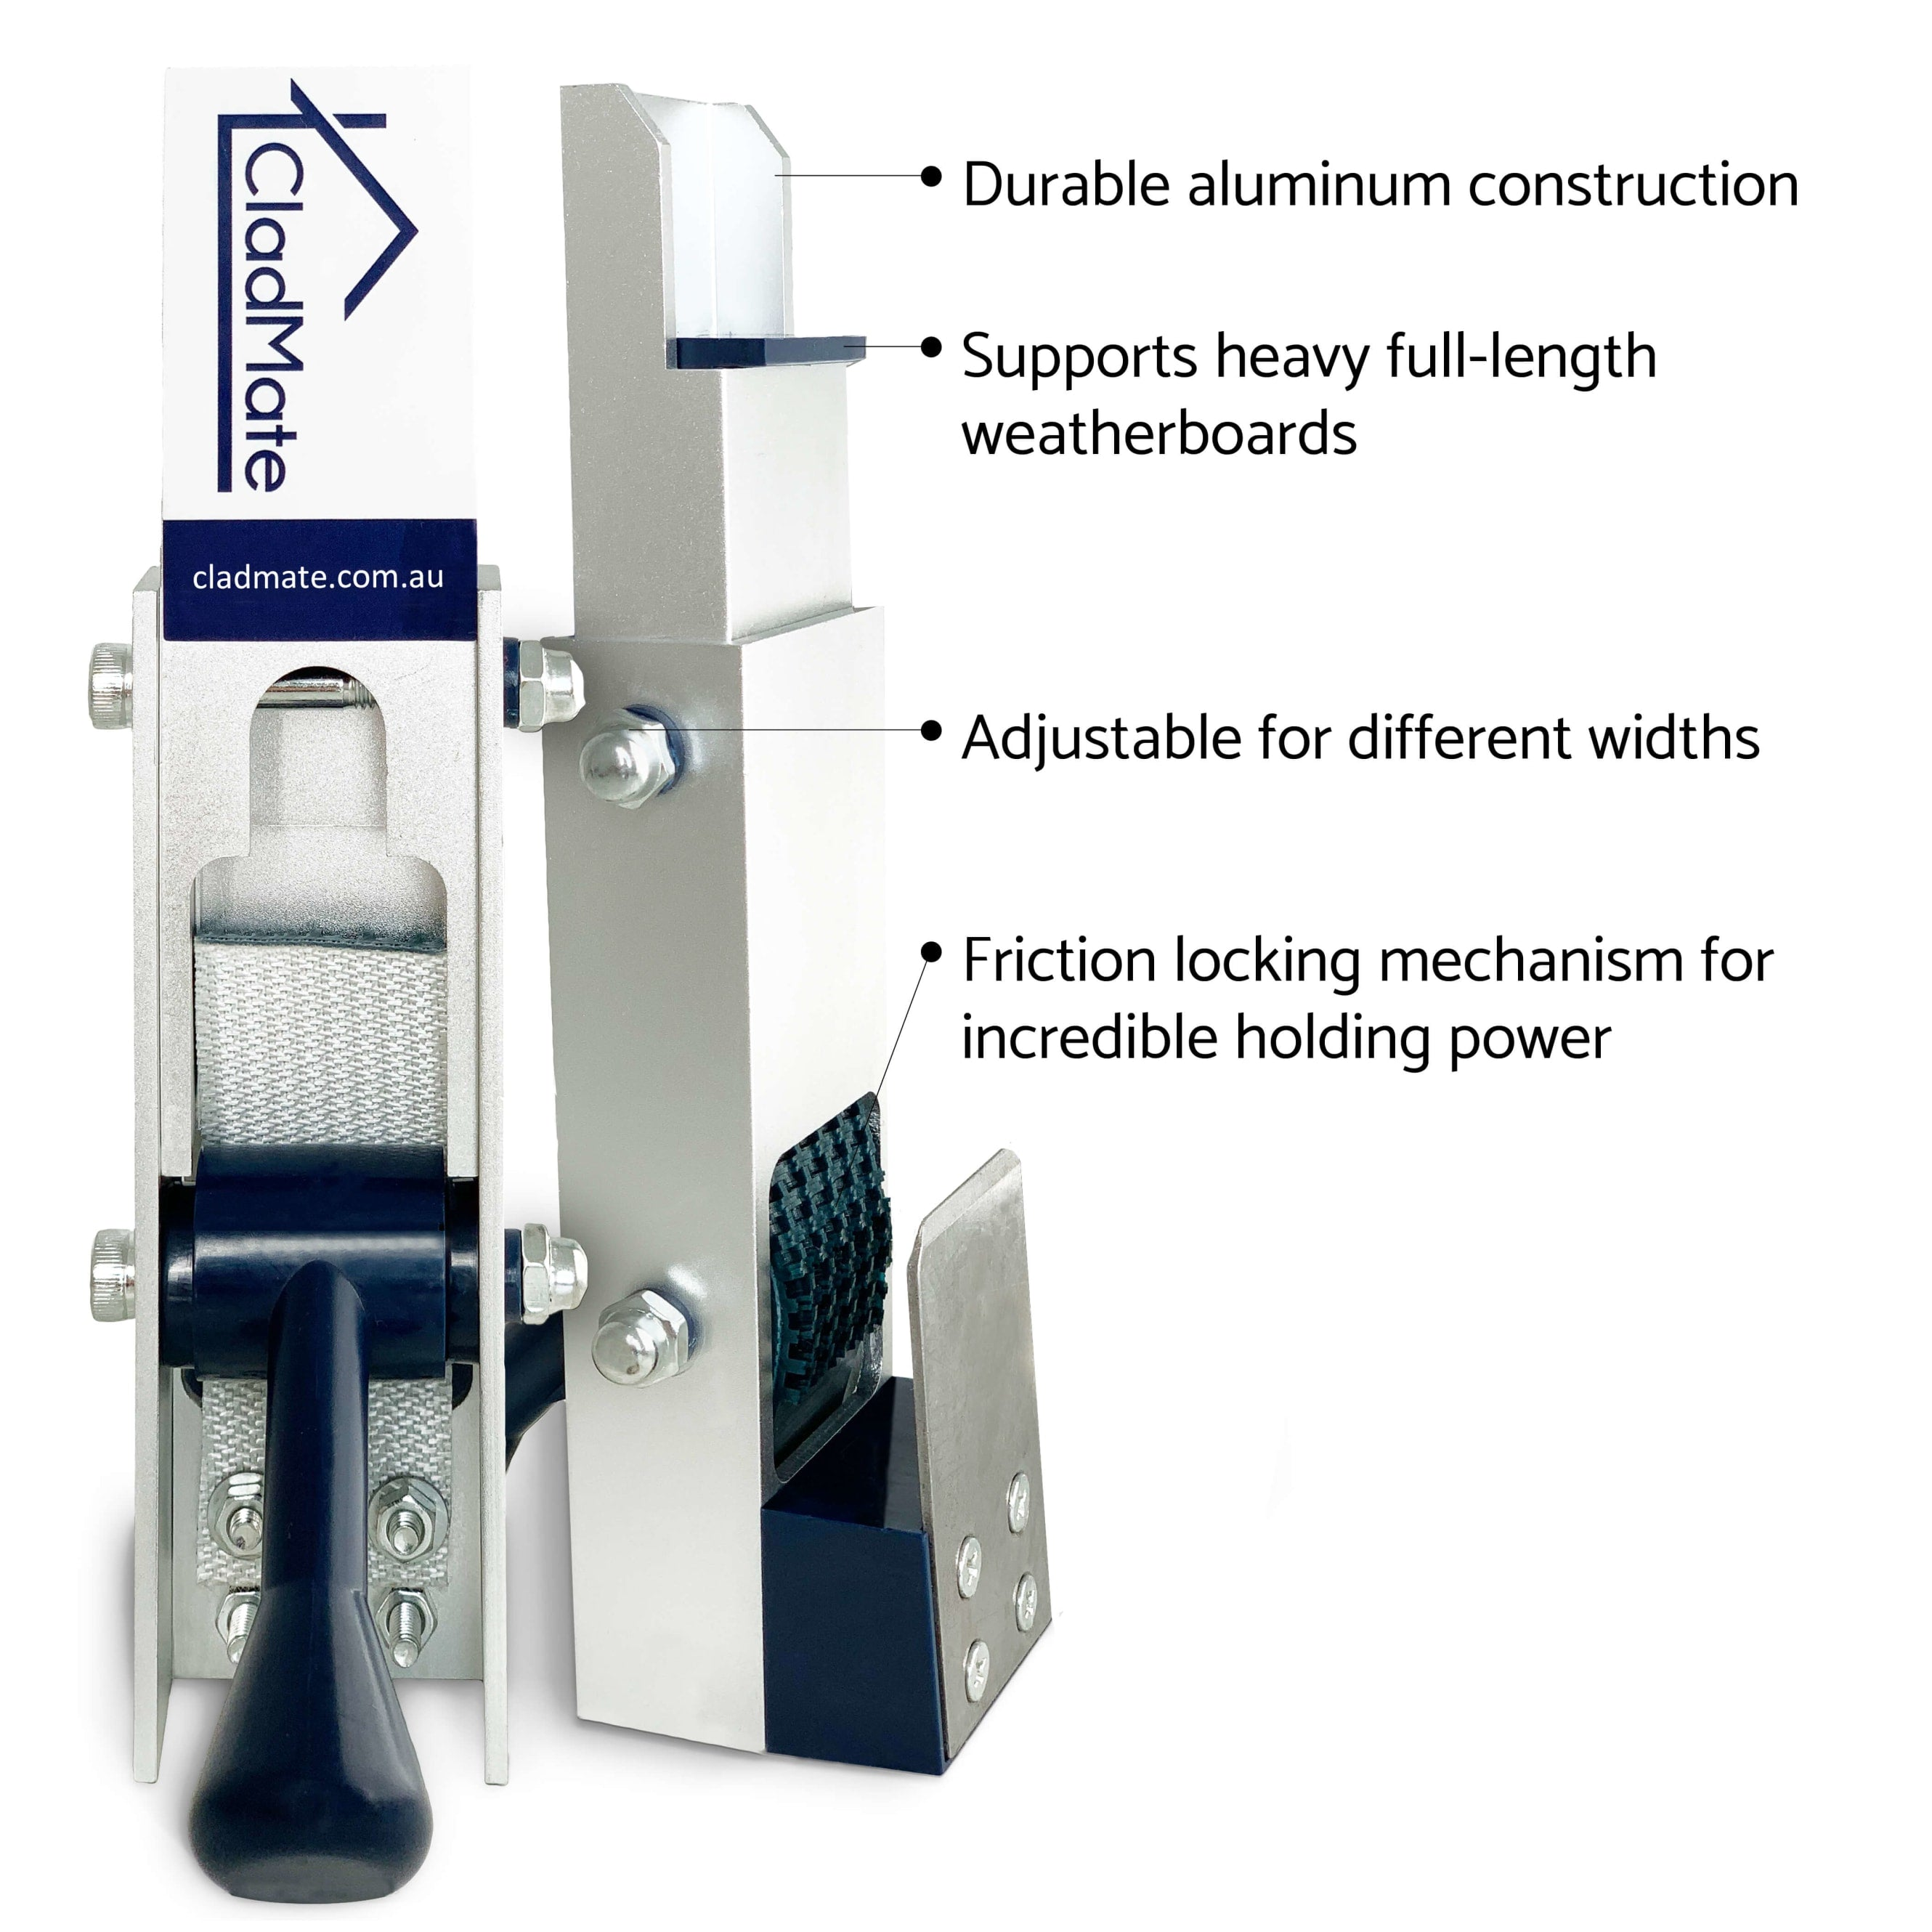 Tradies love CladMate weatherboard clamps for Weatherboard Installation